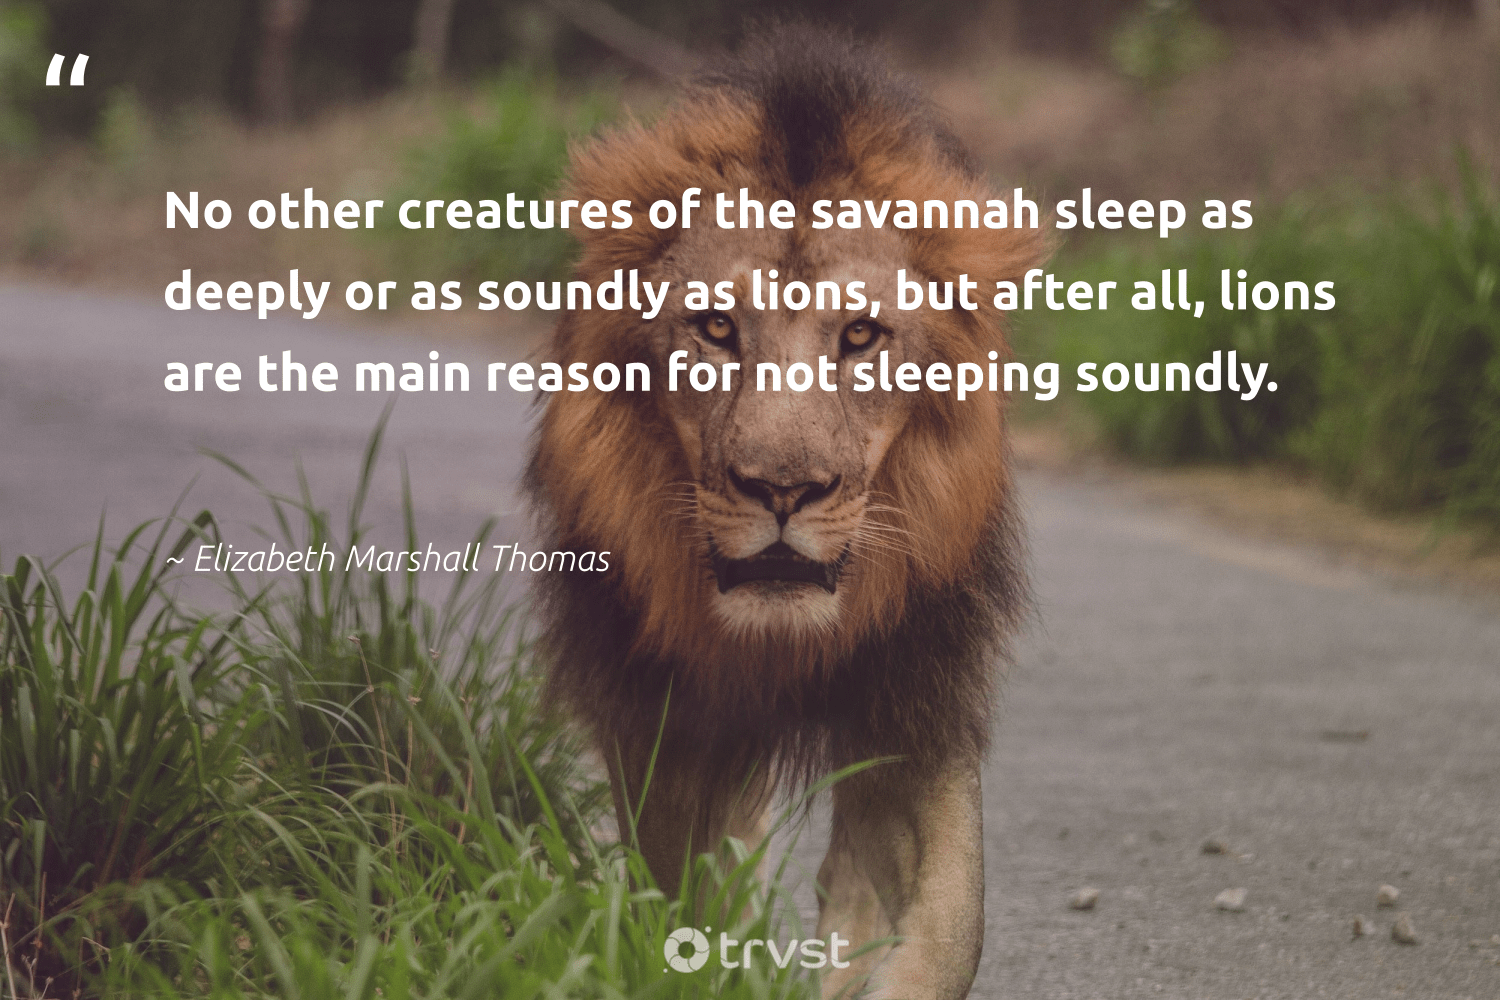 """""""No other creatures of the savannah sleep as deeply or as soundly as lions, but after all, lions are the main reason for not sleeping soundly.""""  - Elizabeth Marshall Thomas #trvst #quotes #lions #wildlife #socialchange #lion #socialimpact #majesticwildlife #takeaction #nature #gogreen #wild"""